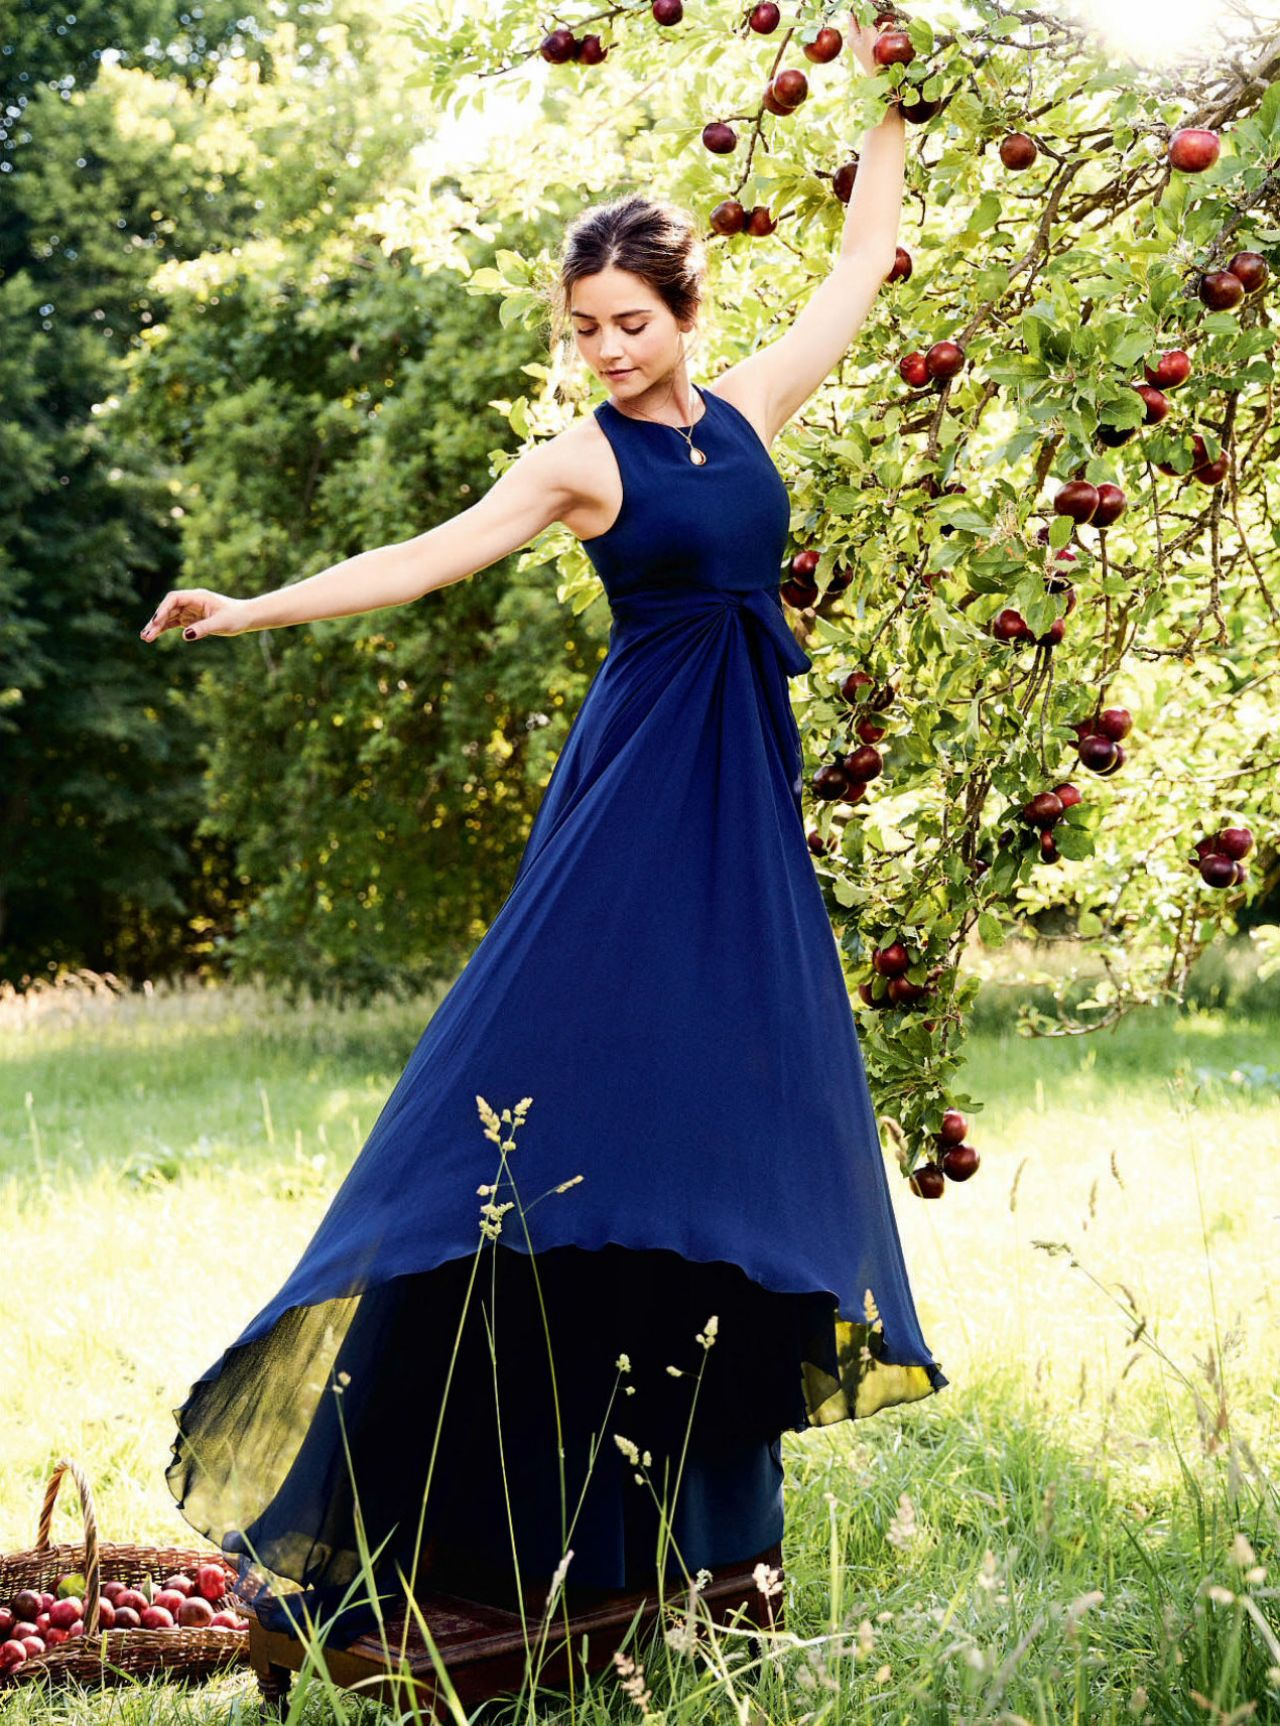 Photoshoot For Vogue Magazine November 2015: Photoshoot For Town & Country (2017